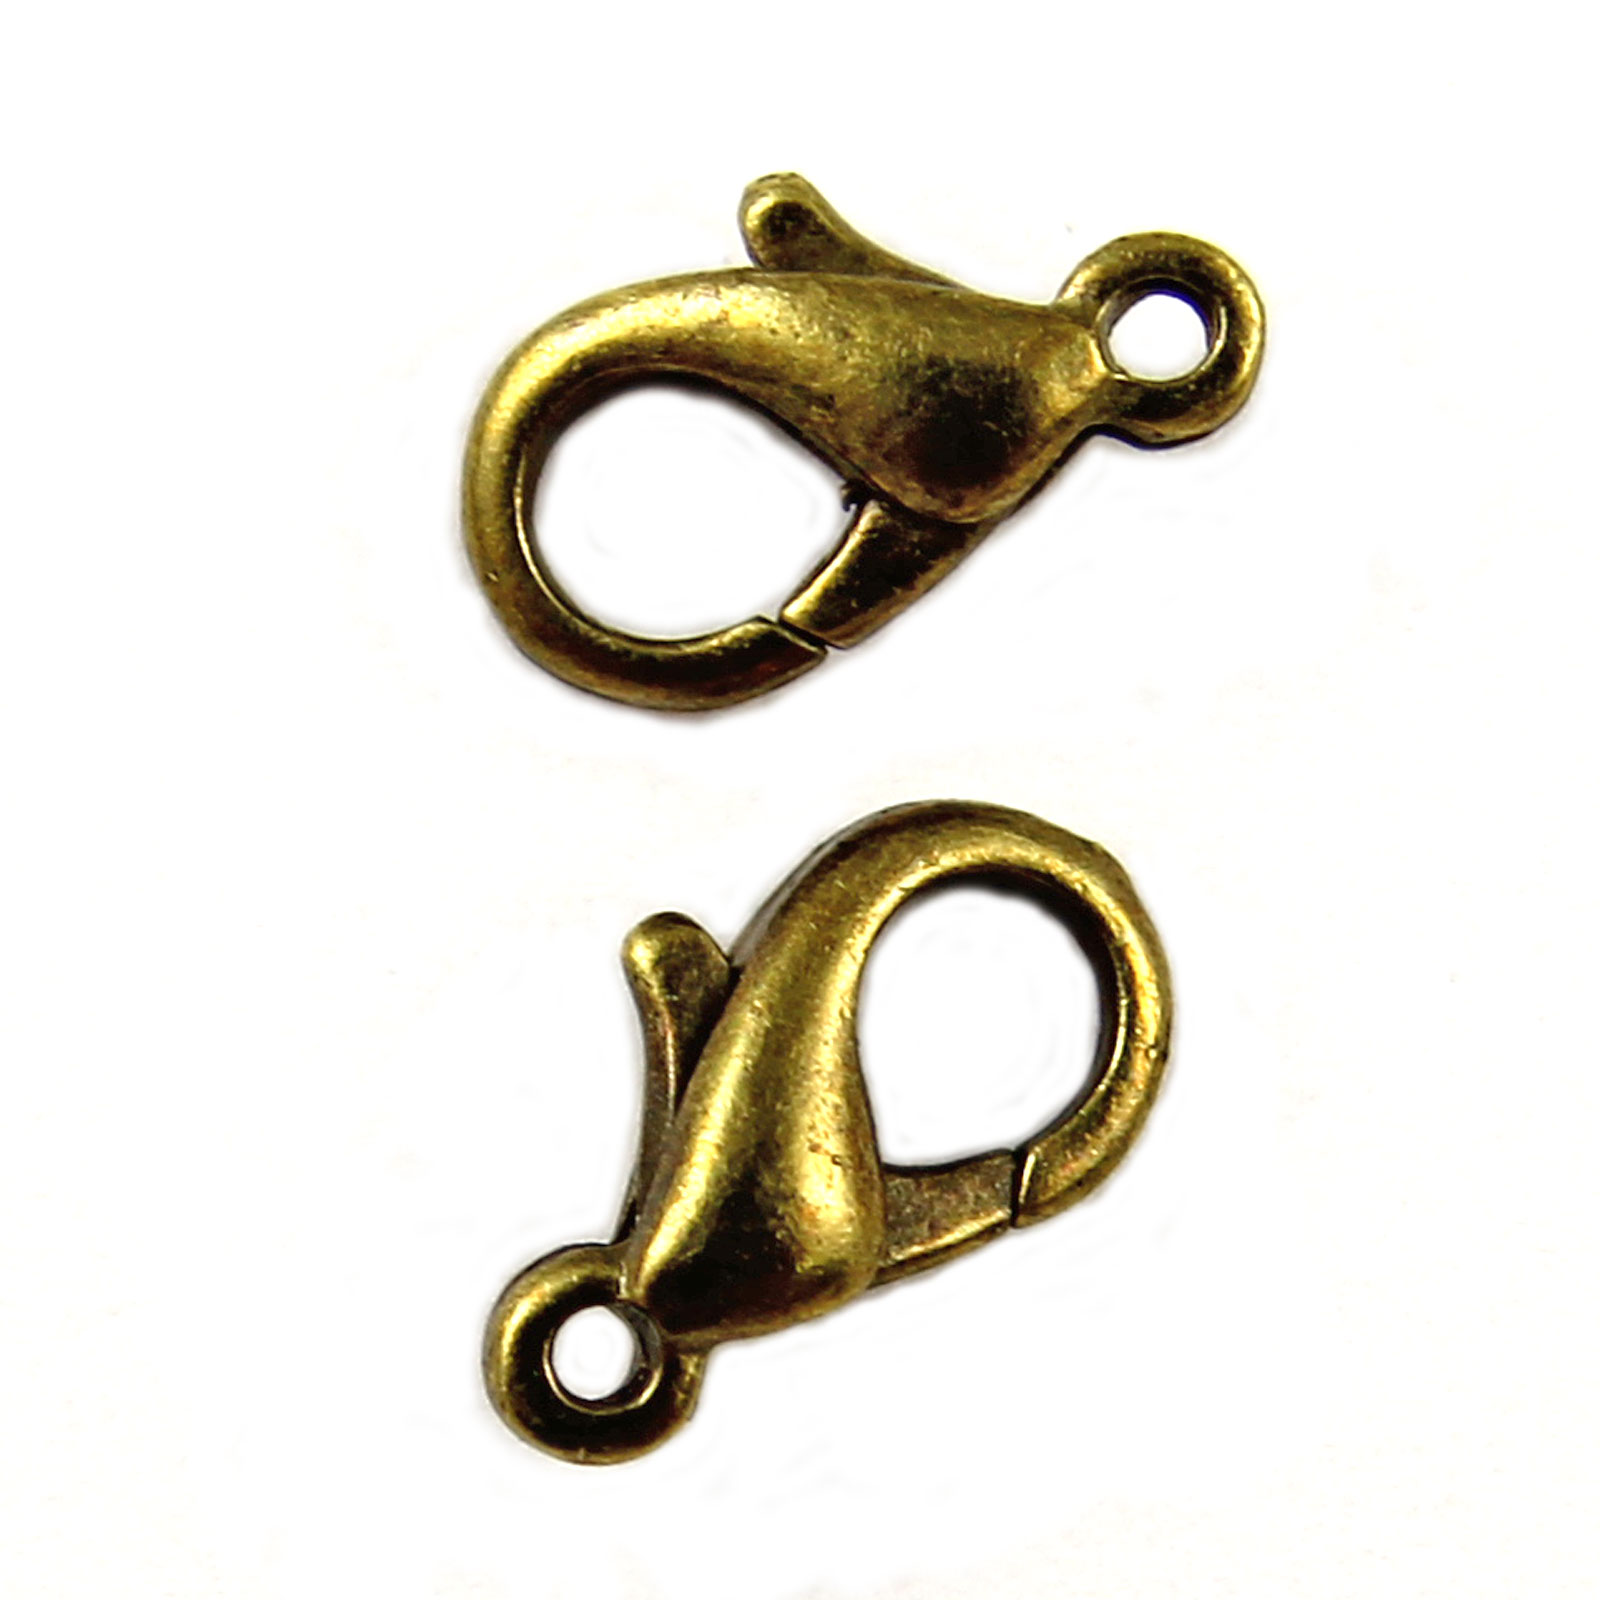 50-Metal-LOBSTER-CLAW-CLASPS-Bronze-Gold-SILVER-PLATED-10mm-12mm-14mm